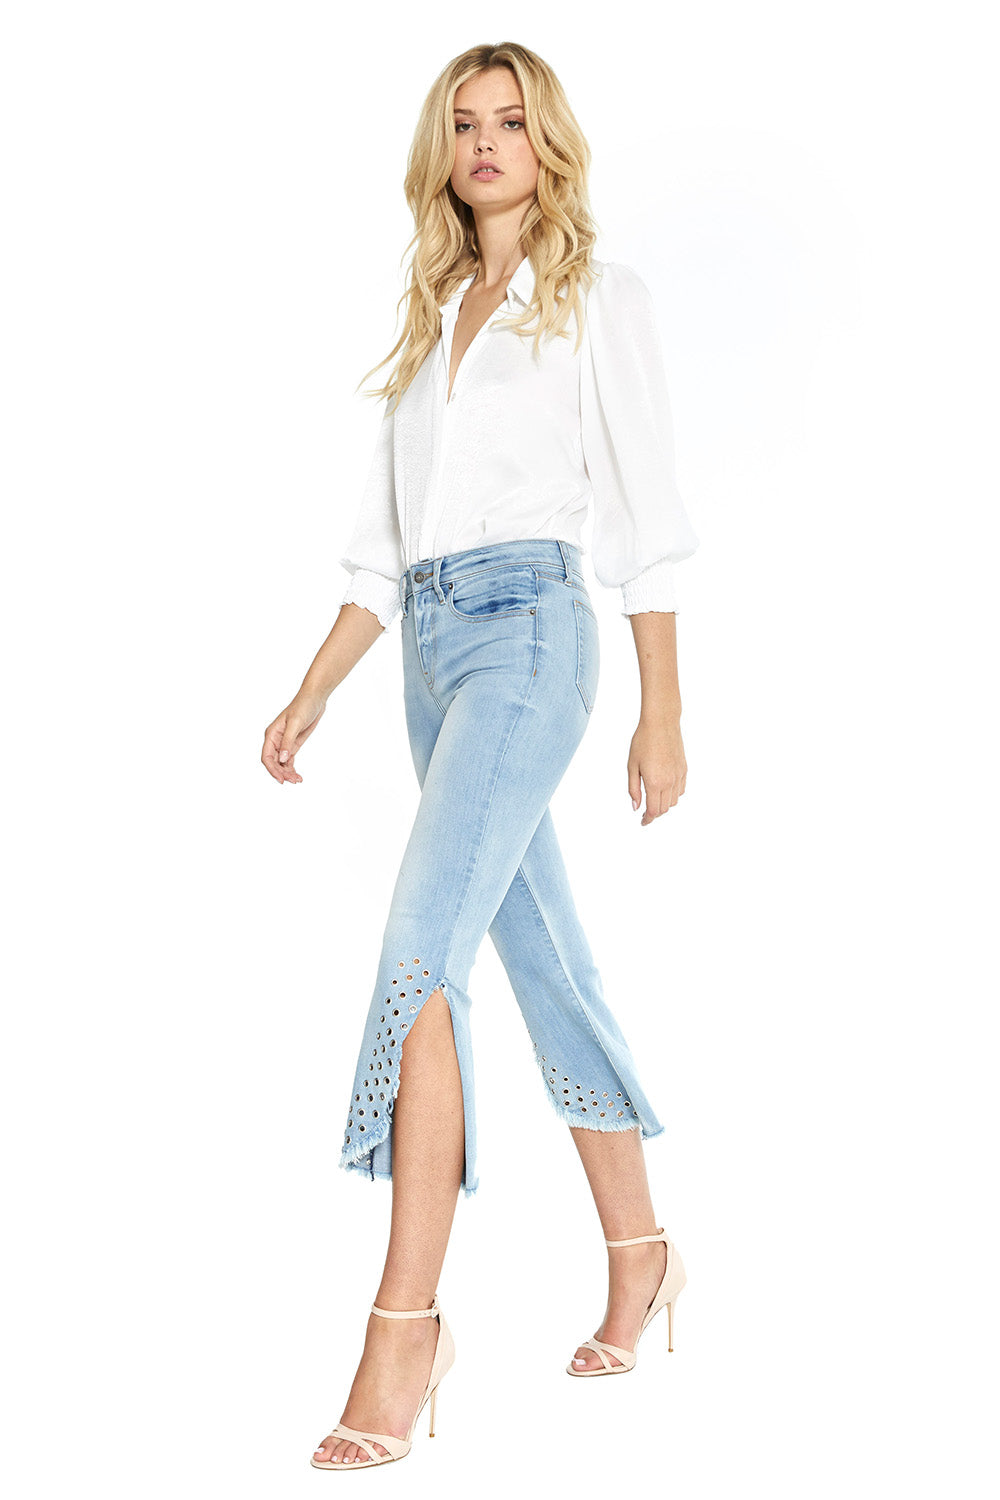 Superstar Crop Flare Jeans - MISA Los Angeles